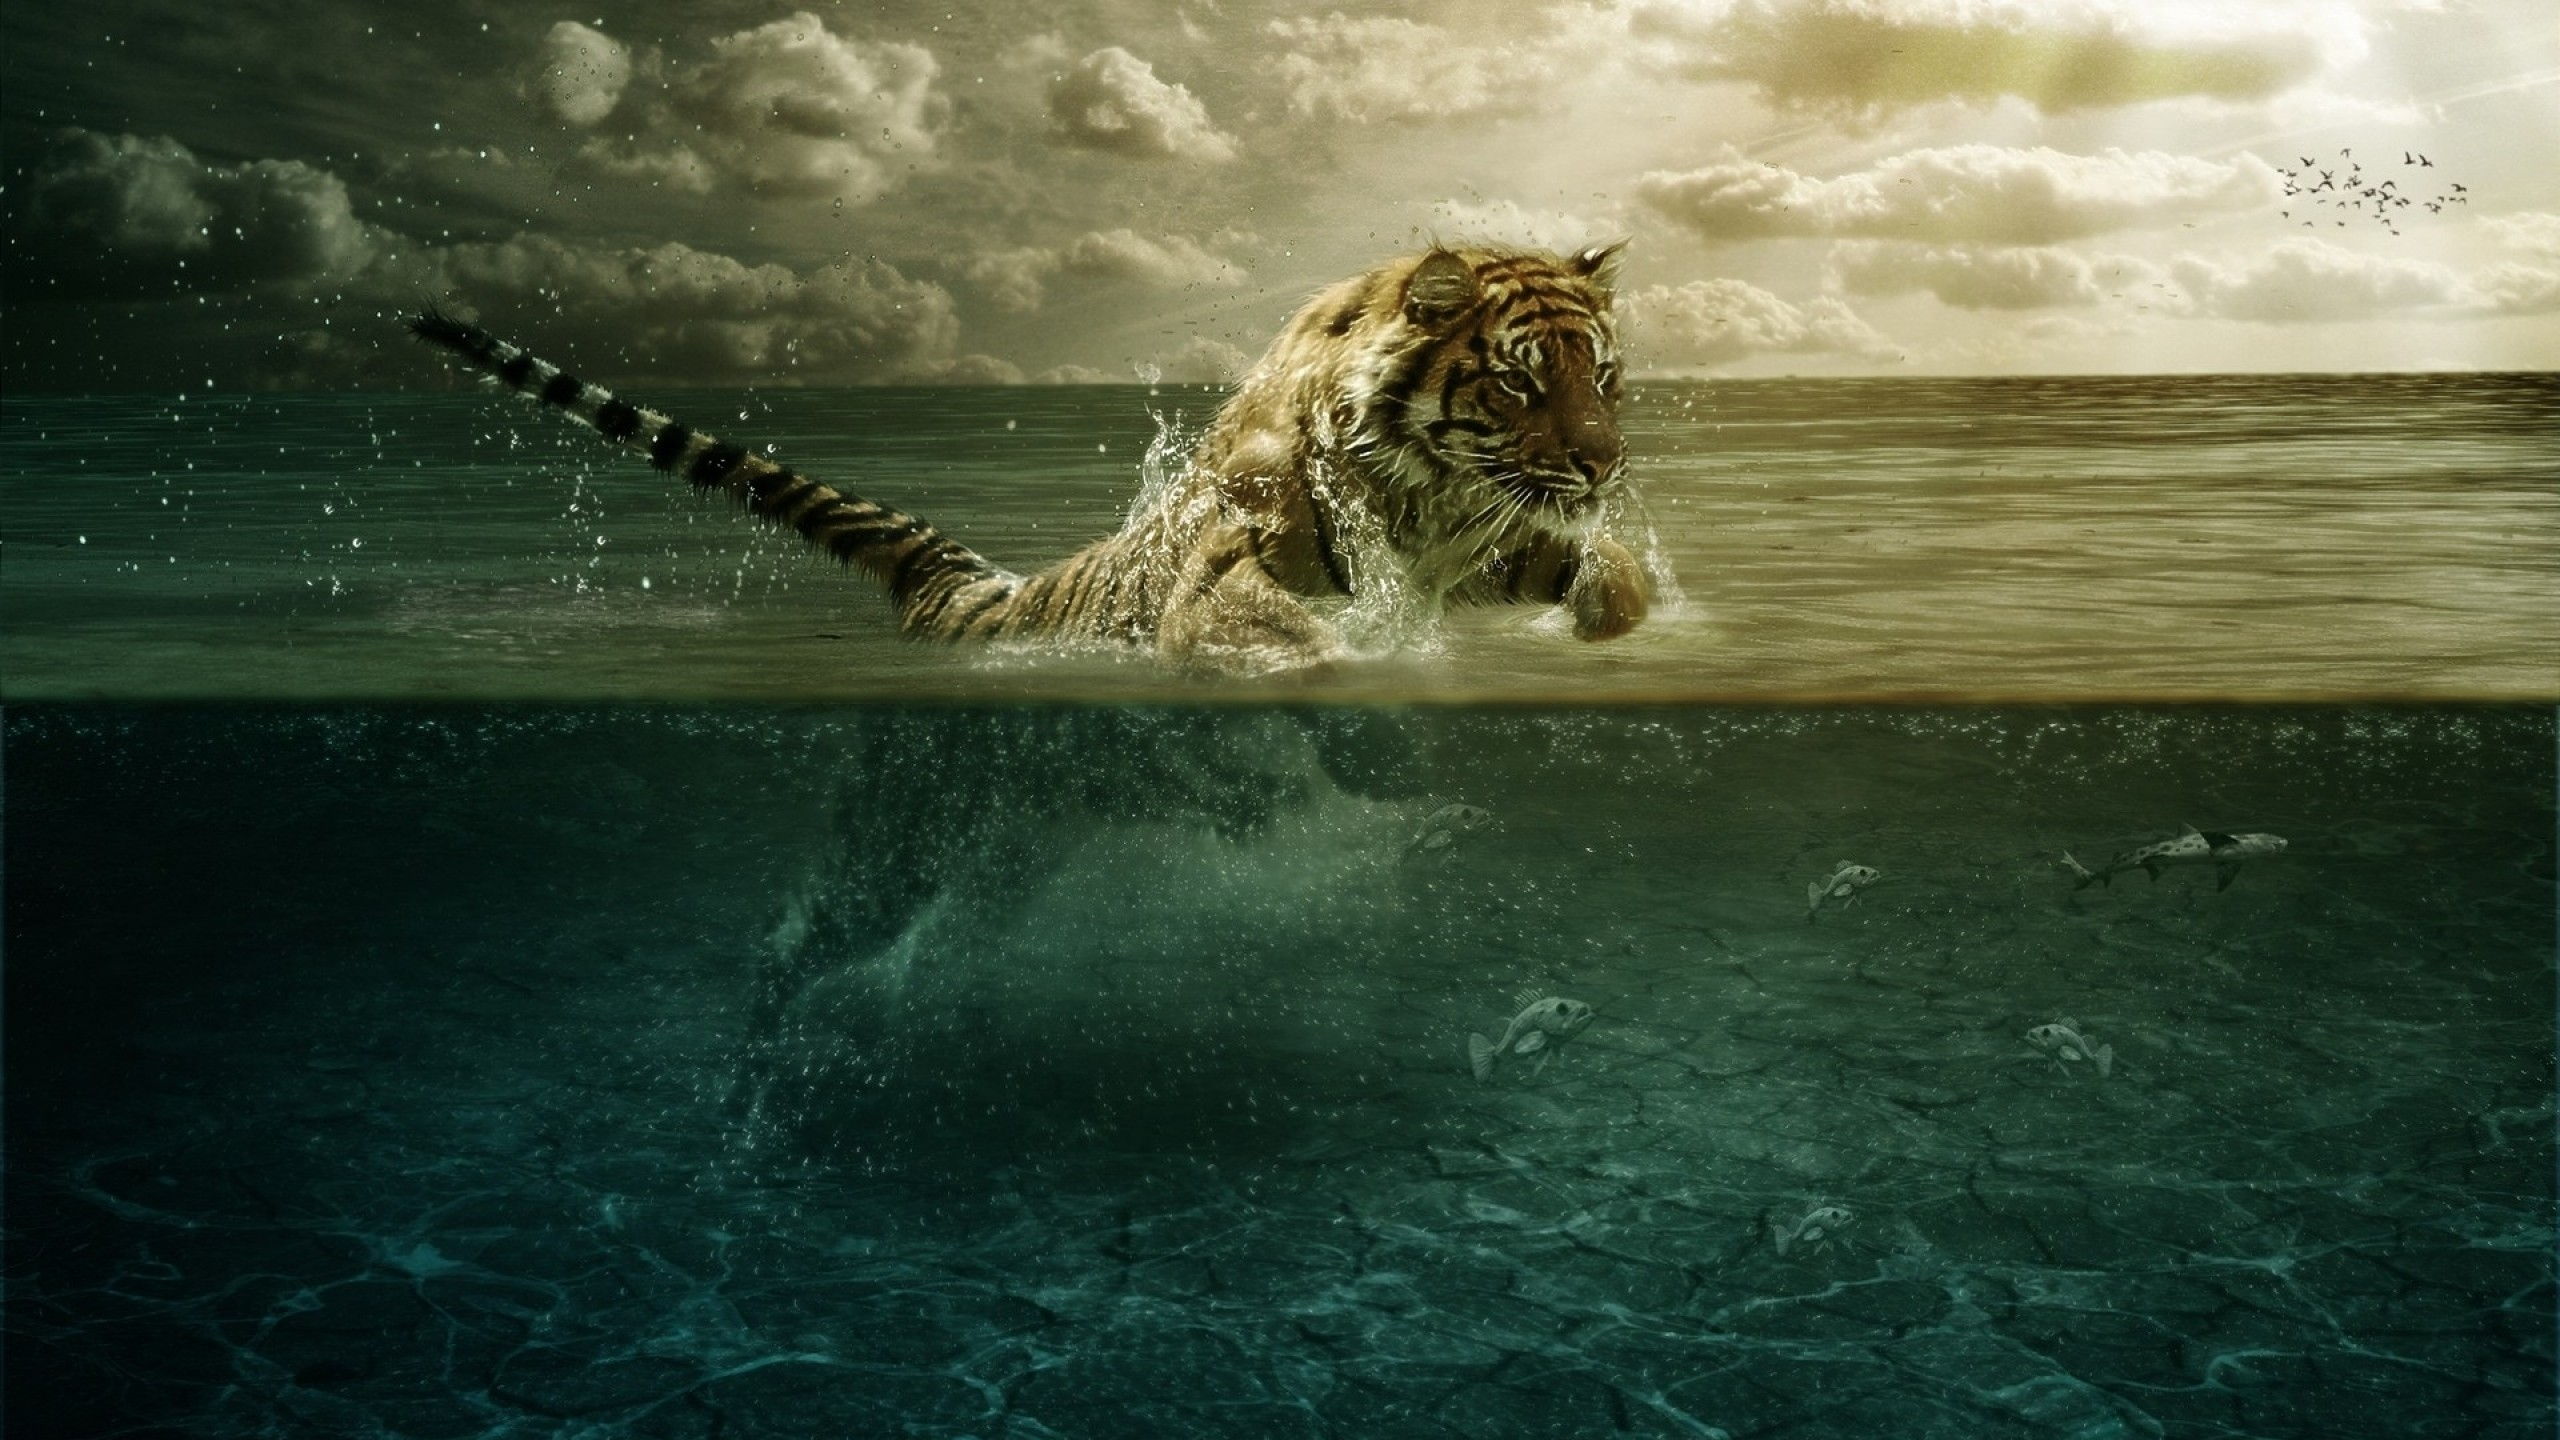 2560x1440 ... Background Mac iMac 27.  Wallpaper tiger, jump, sea,  underwater, hunting